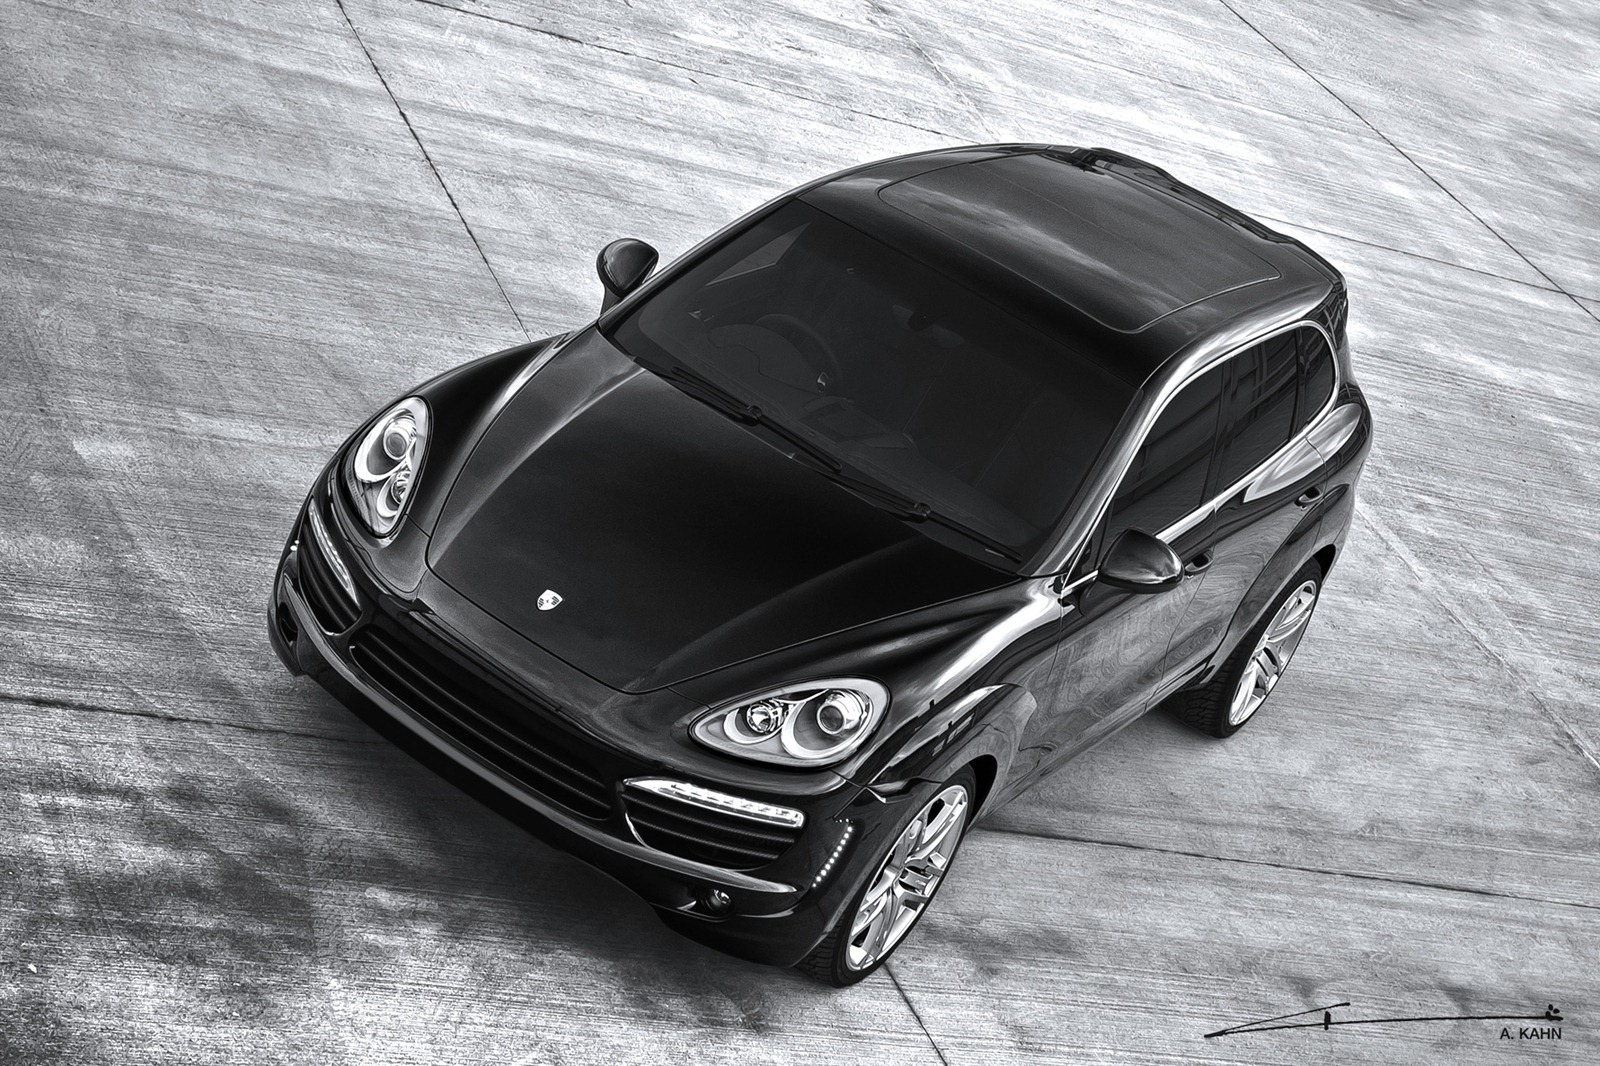 Project Kahn unveils new Porsche Cayenne tuning kit